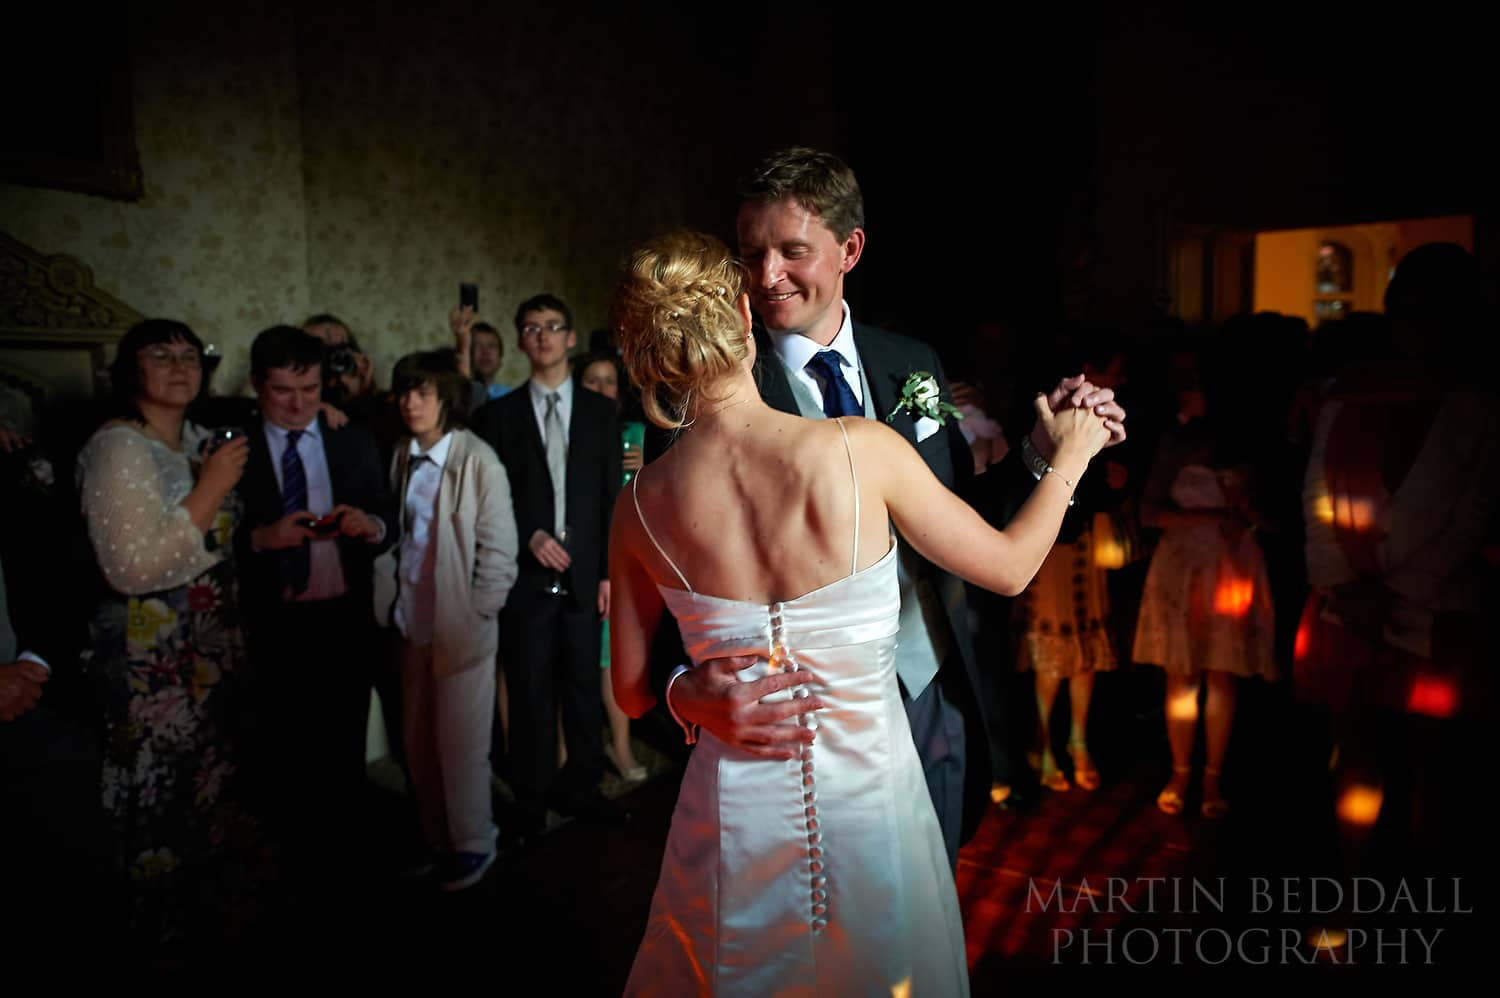 First dance at The Elvetham hotel wedding